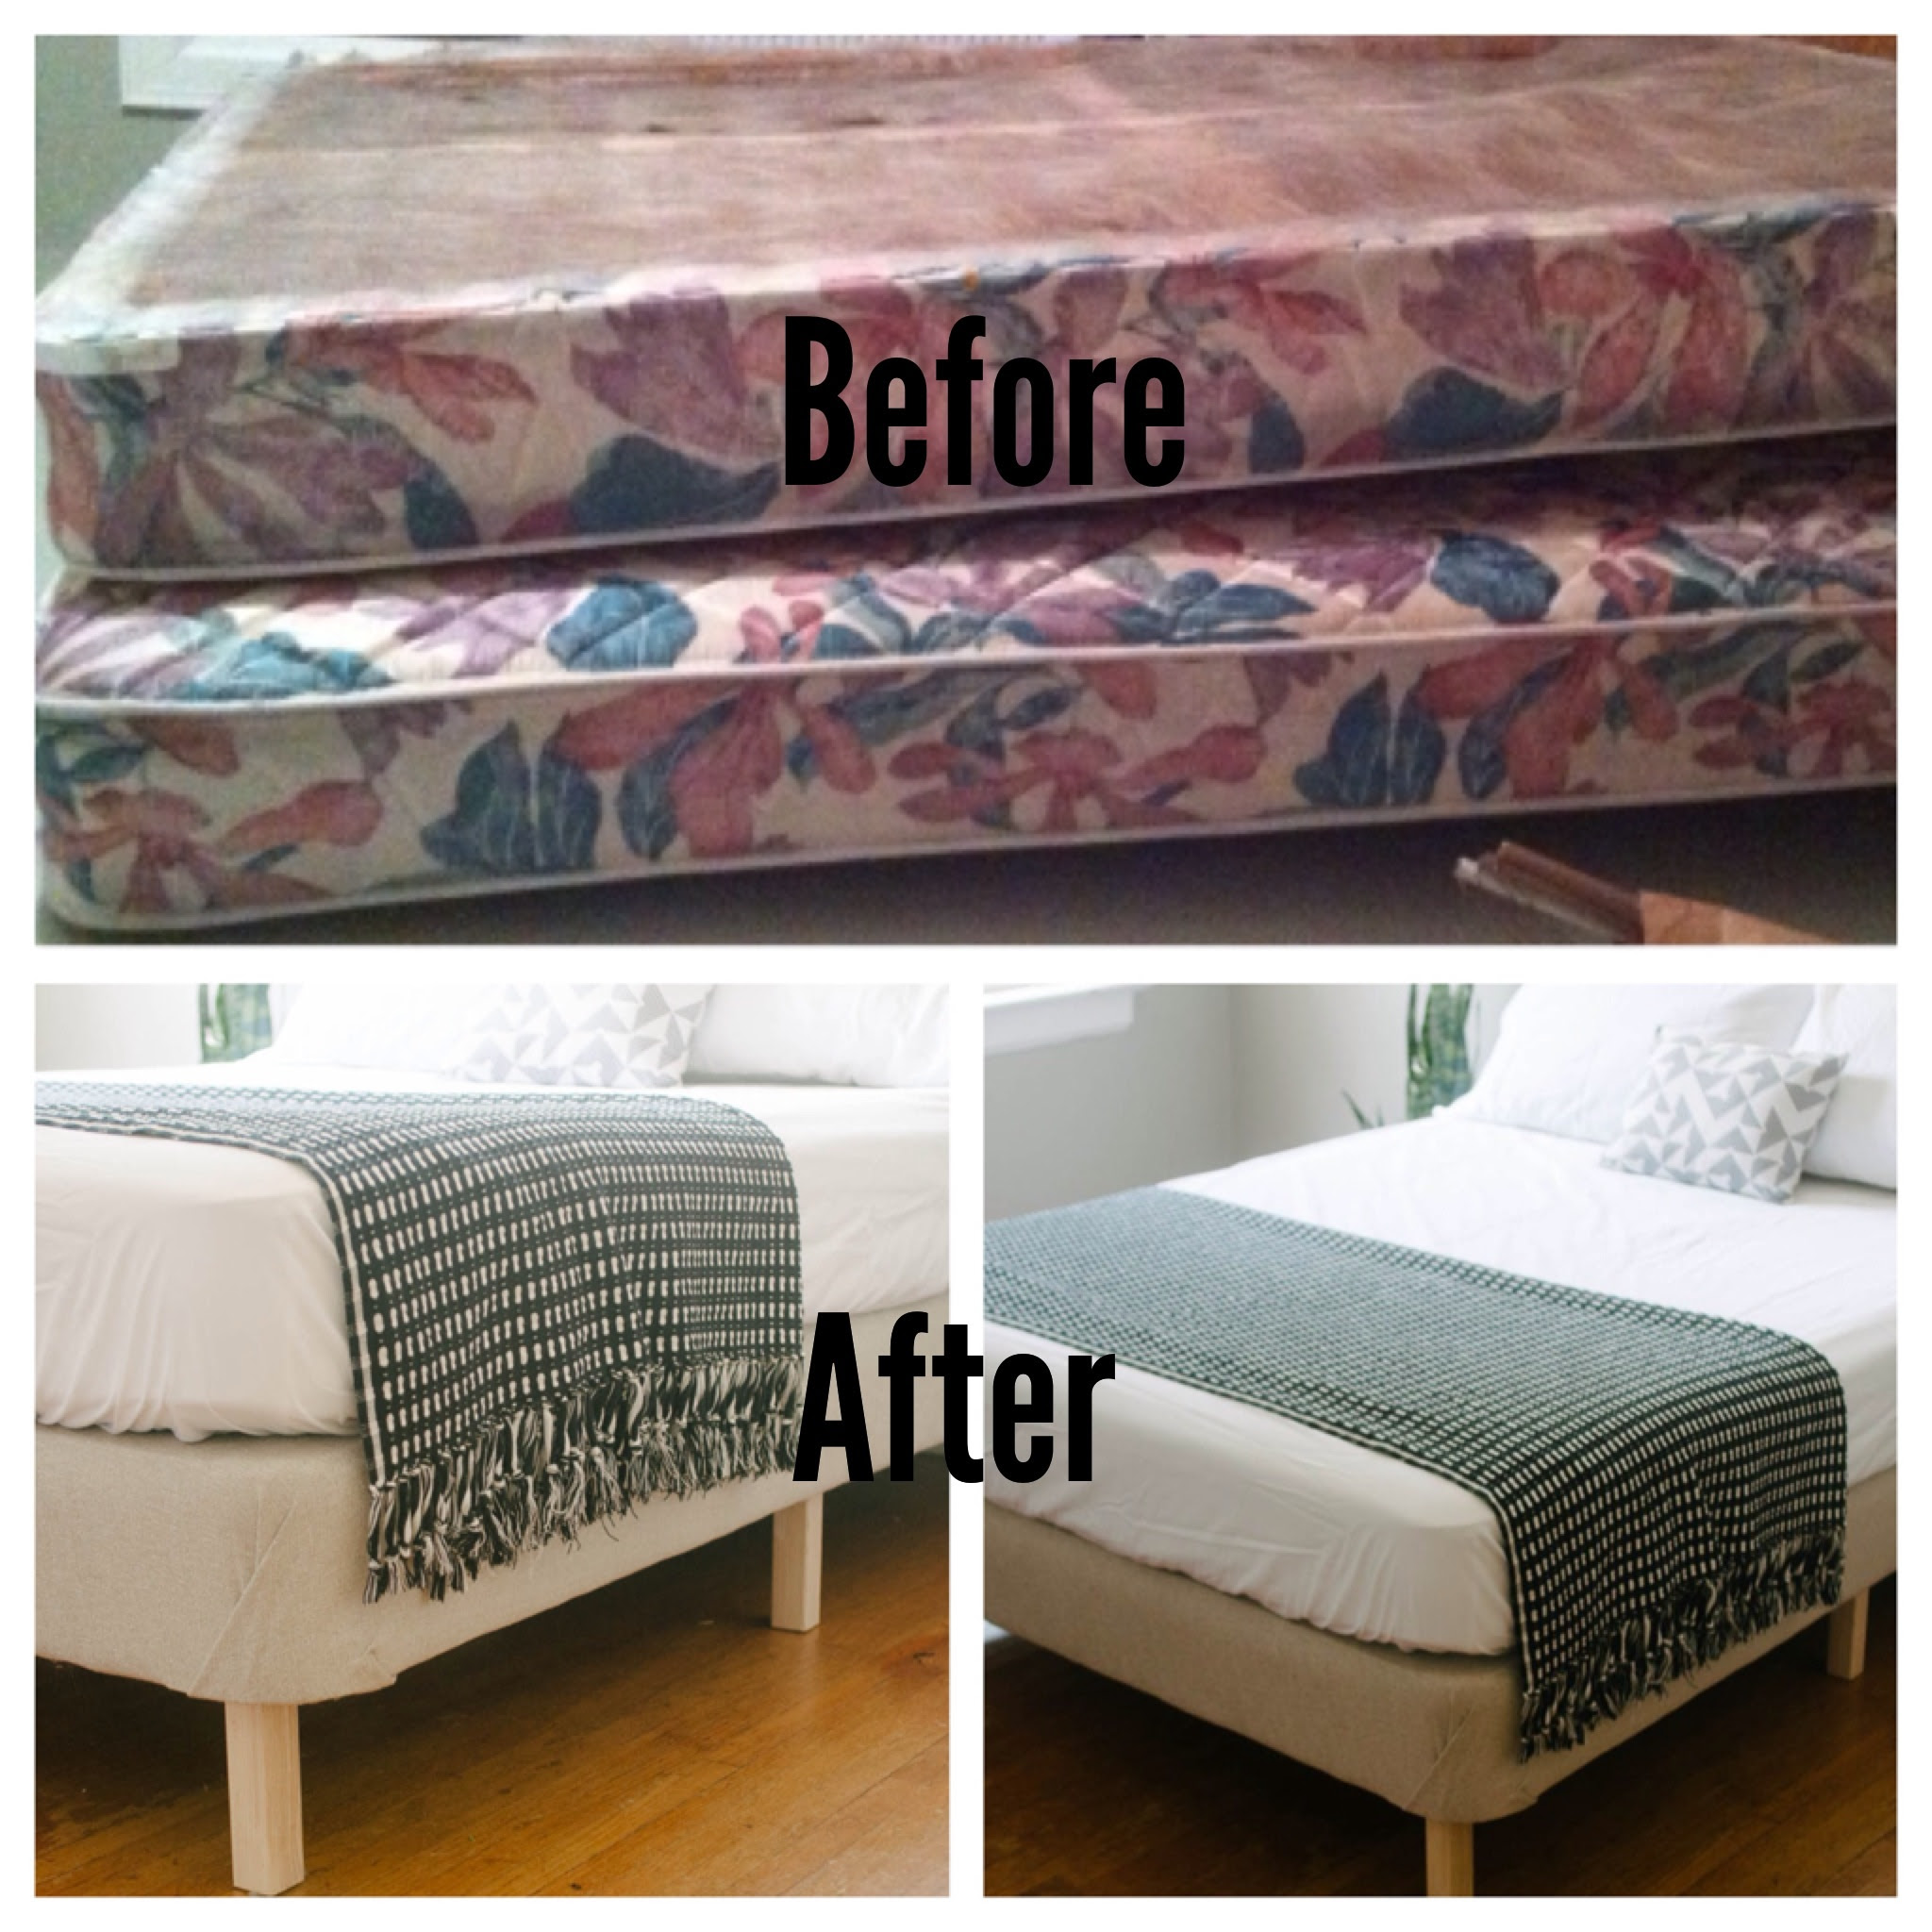 Simple is Better: A DIY Modern Bed